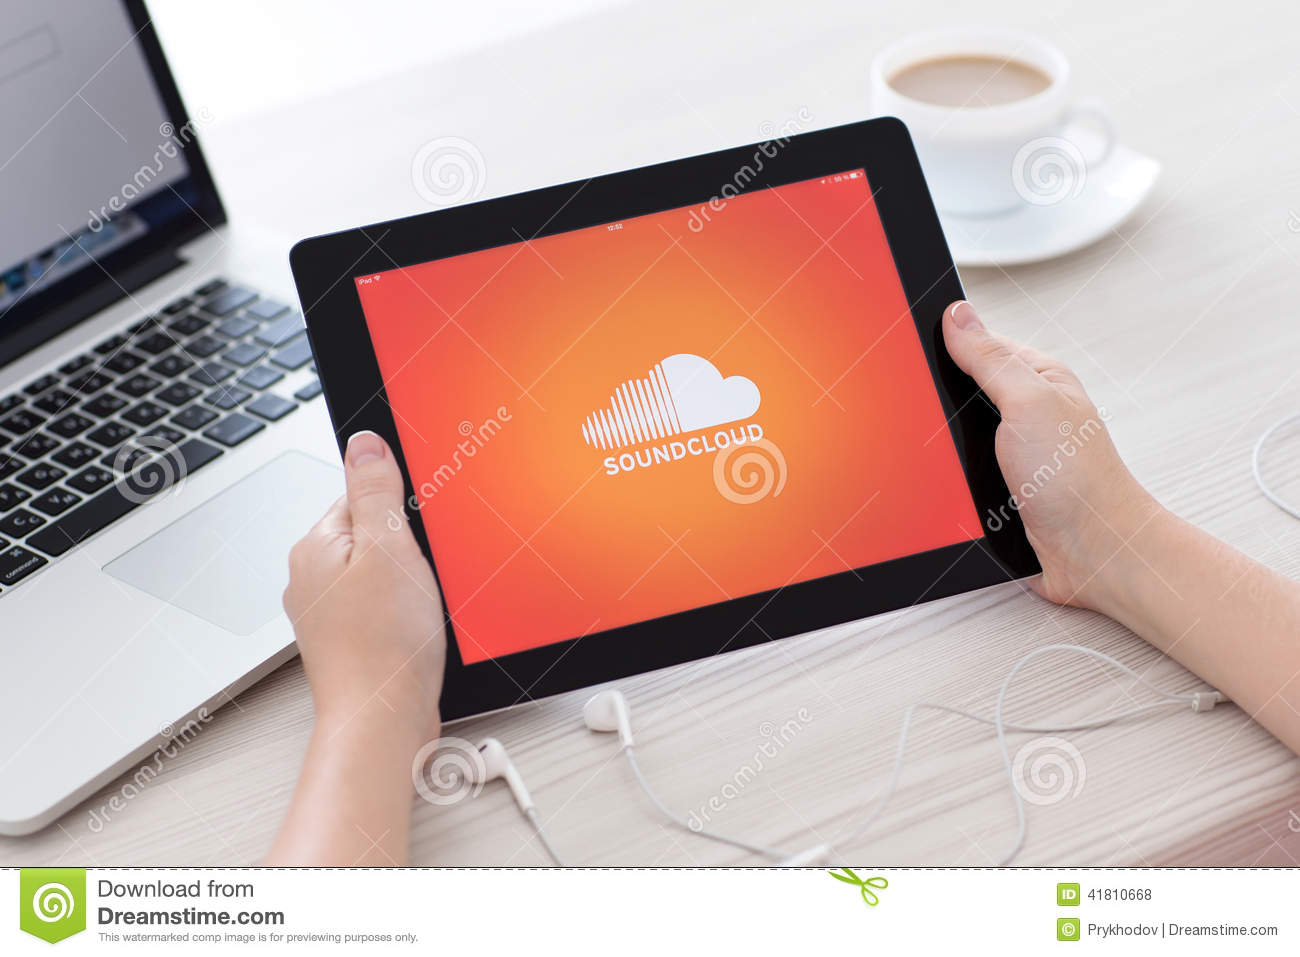 how to download song from soundcloud using ipad